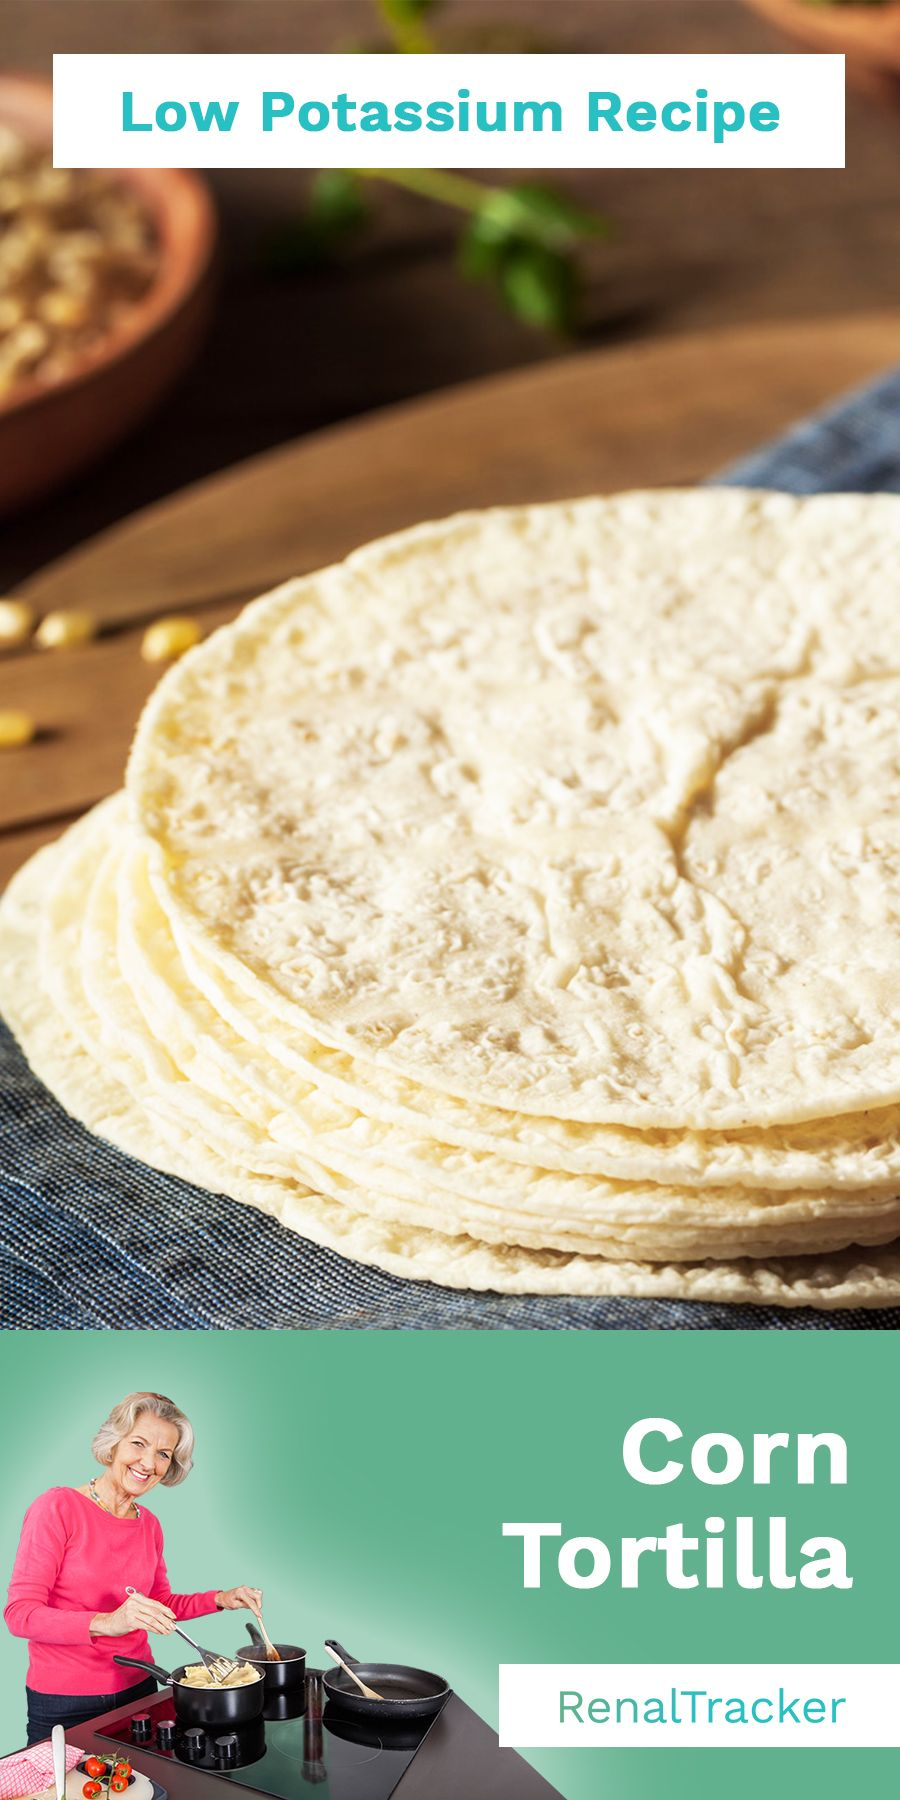 can someone on a renal diet have tortilla